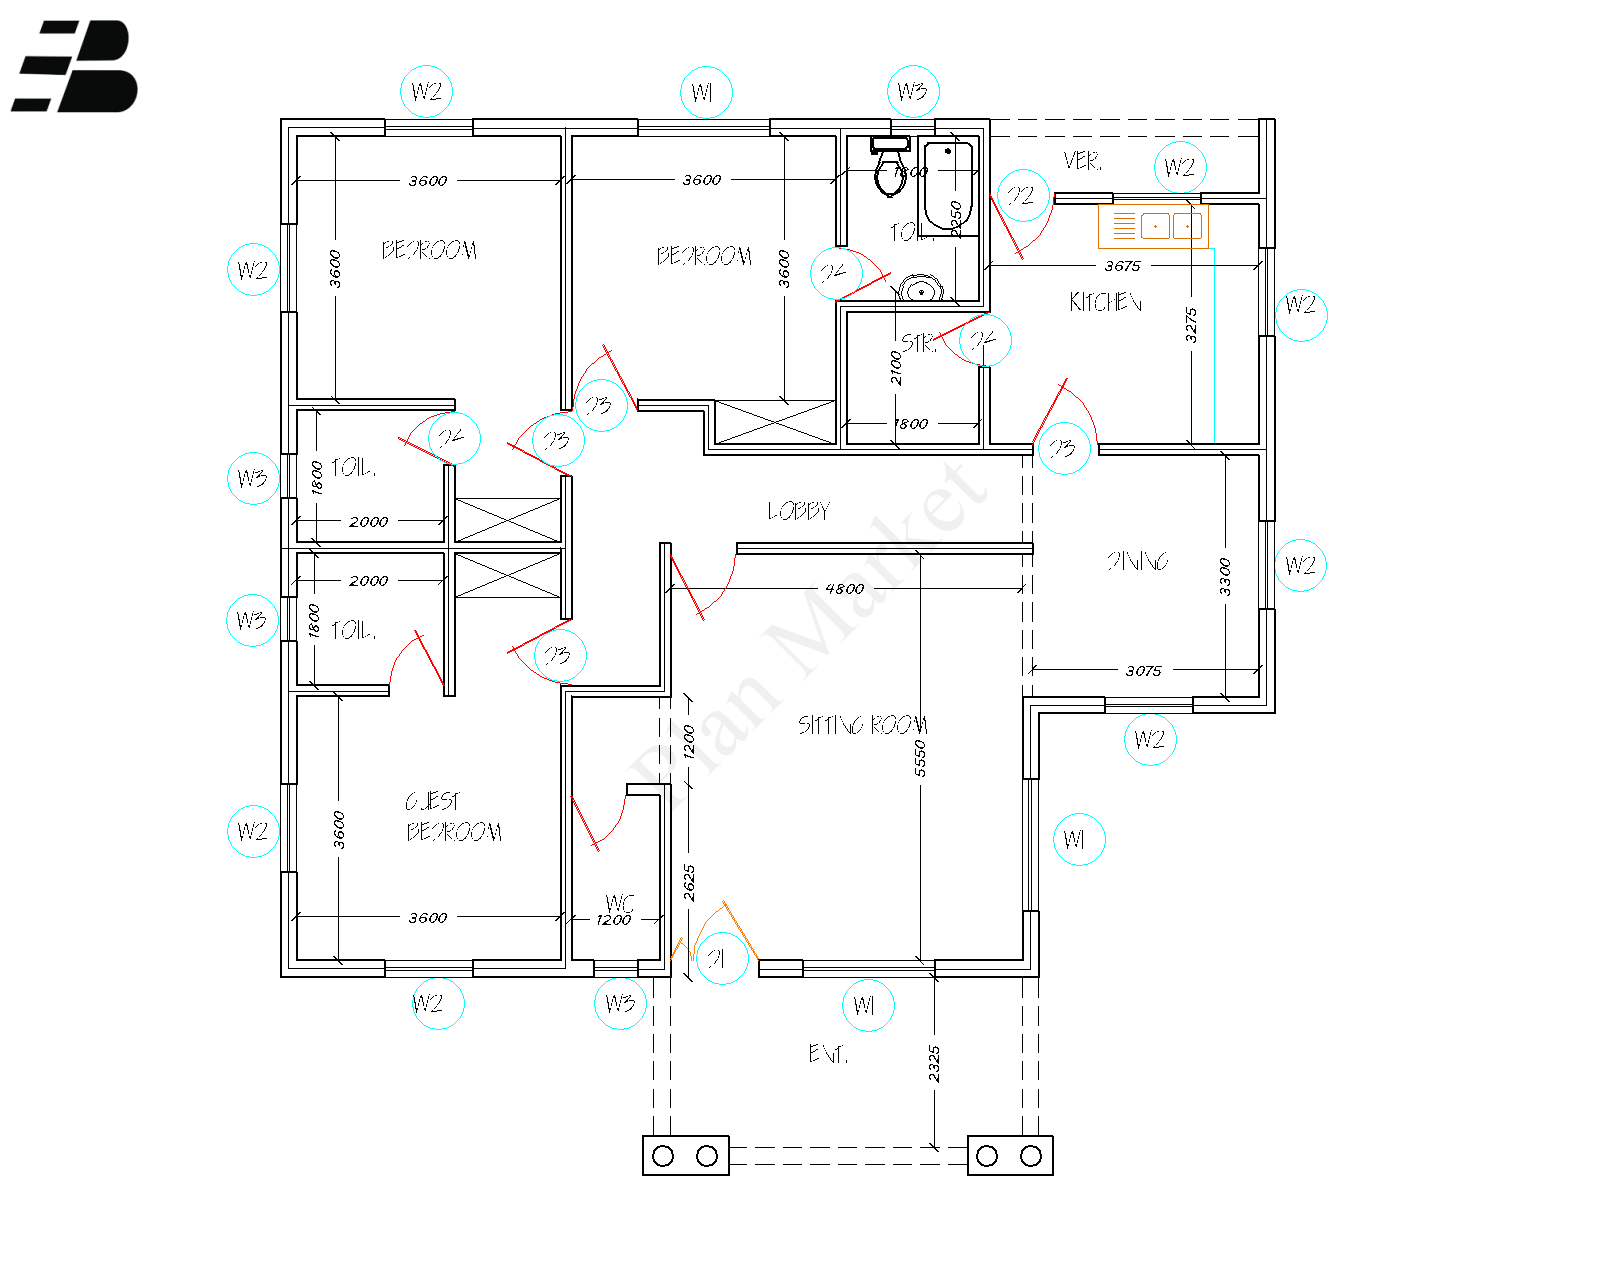 3 Bedroom Flat Plan Market 3 Bedroom Flat Architectural House Plans Modern Bungalow House